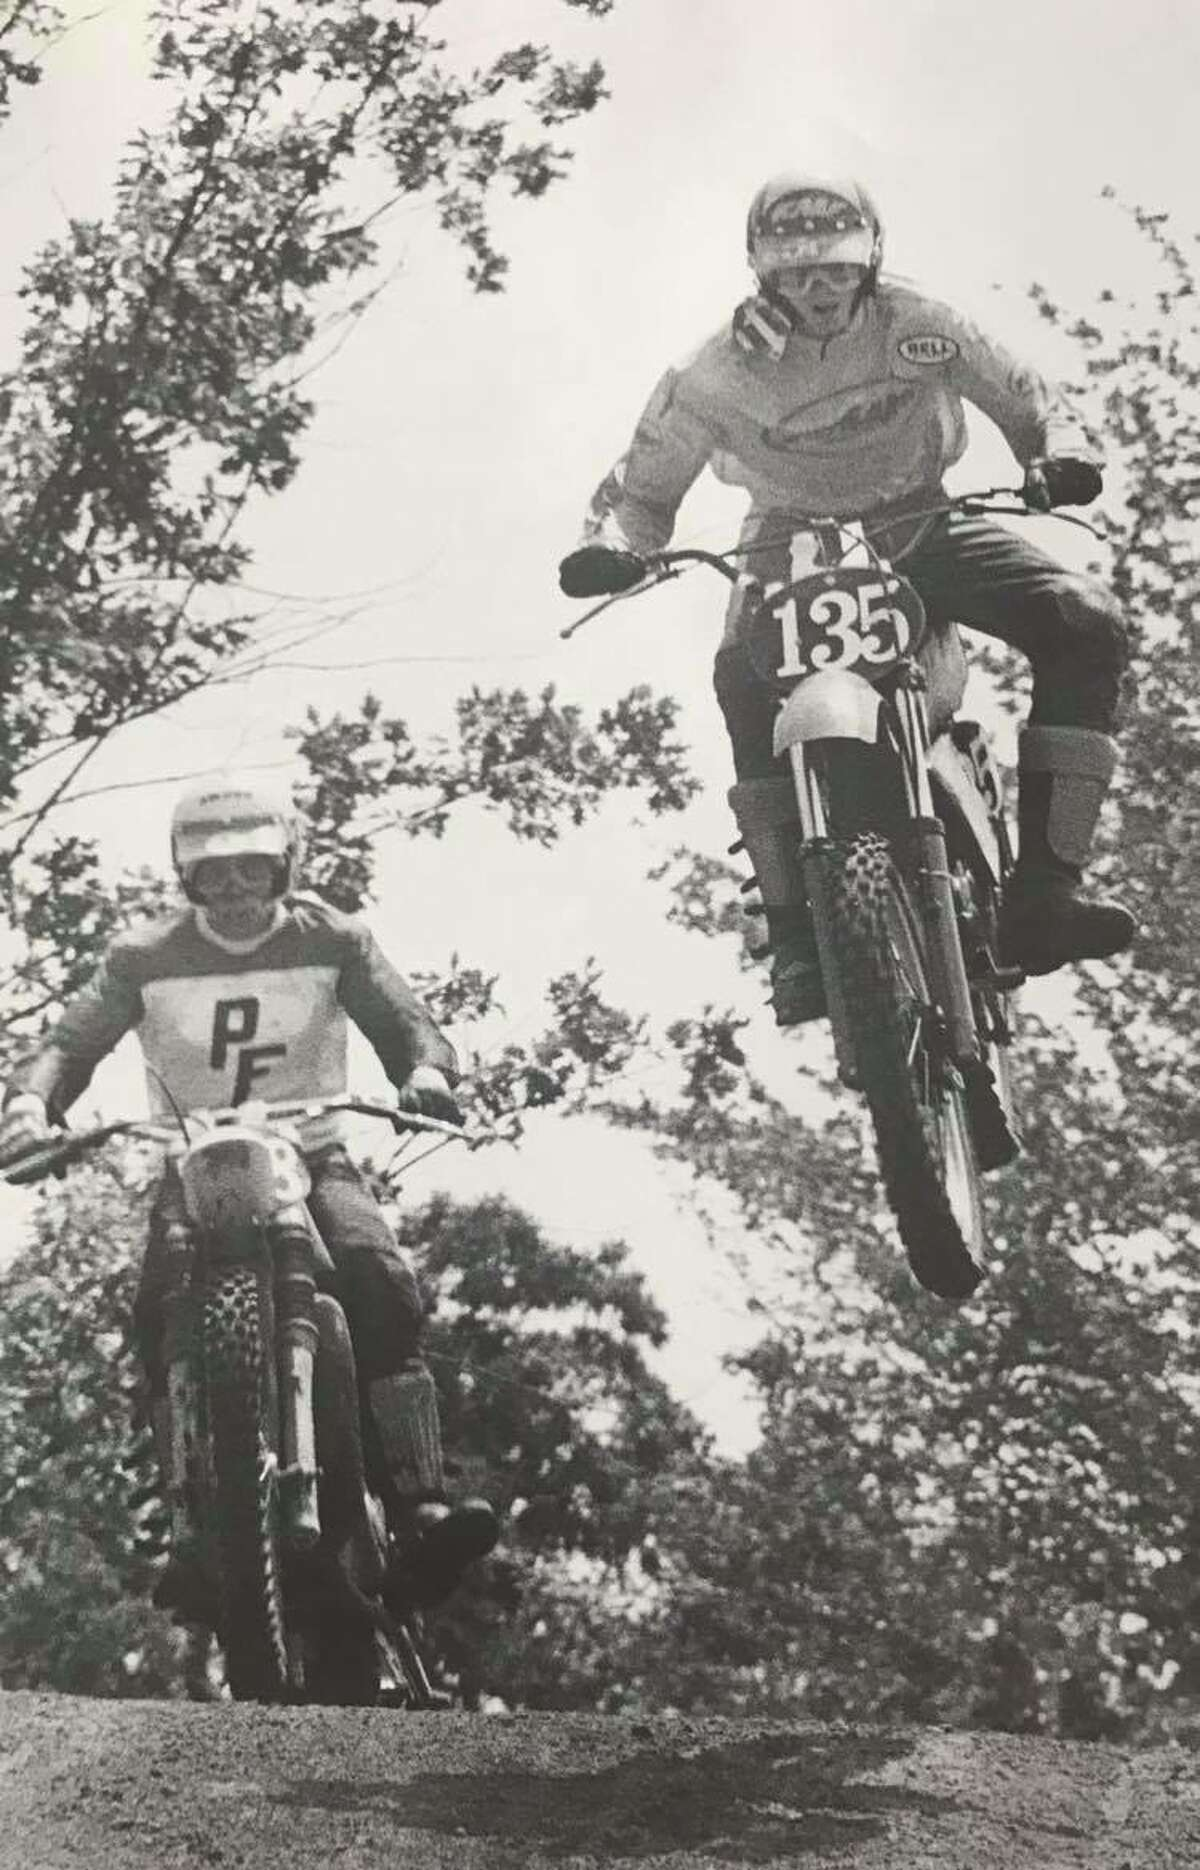 Randy Hess, right, and another rider go through a practice run at the Polka Dots Motorcycle Club track. June 1977